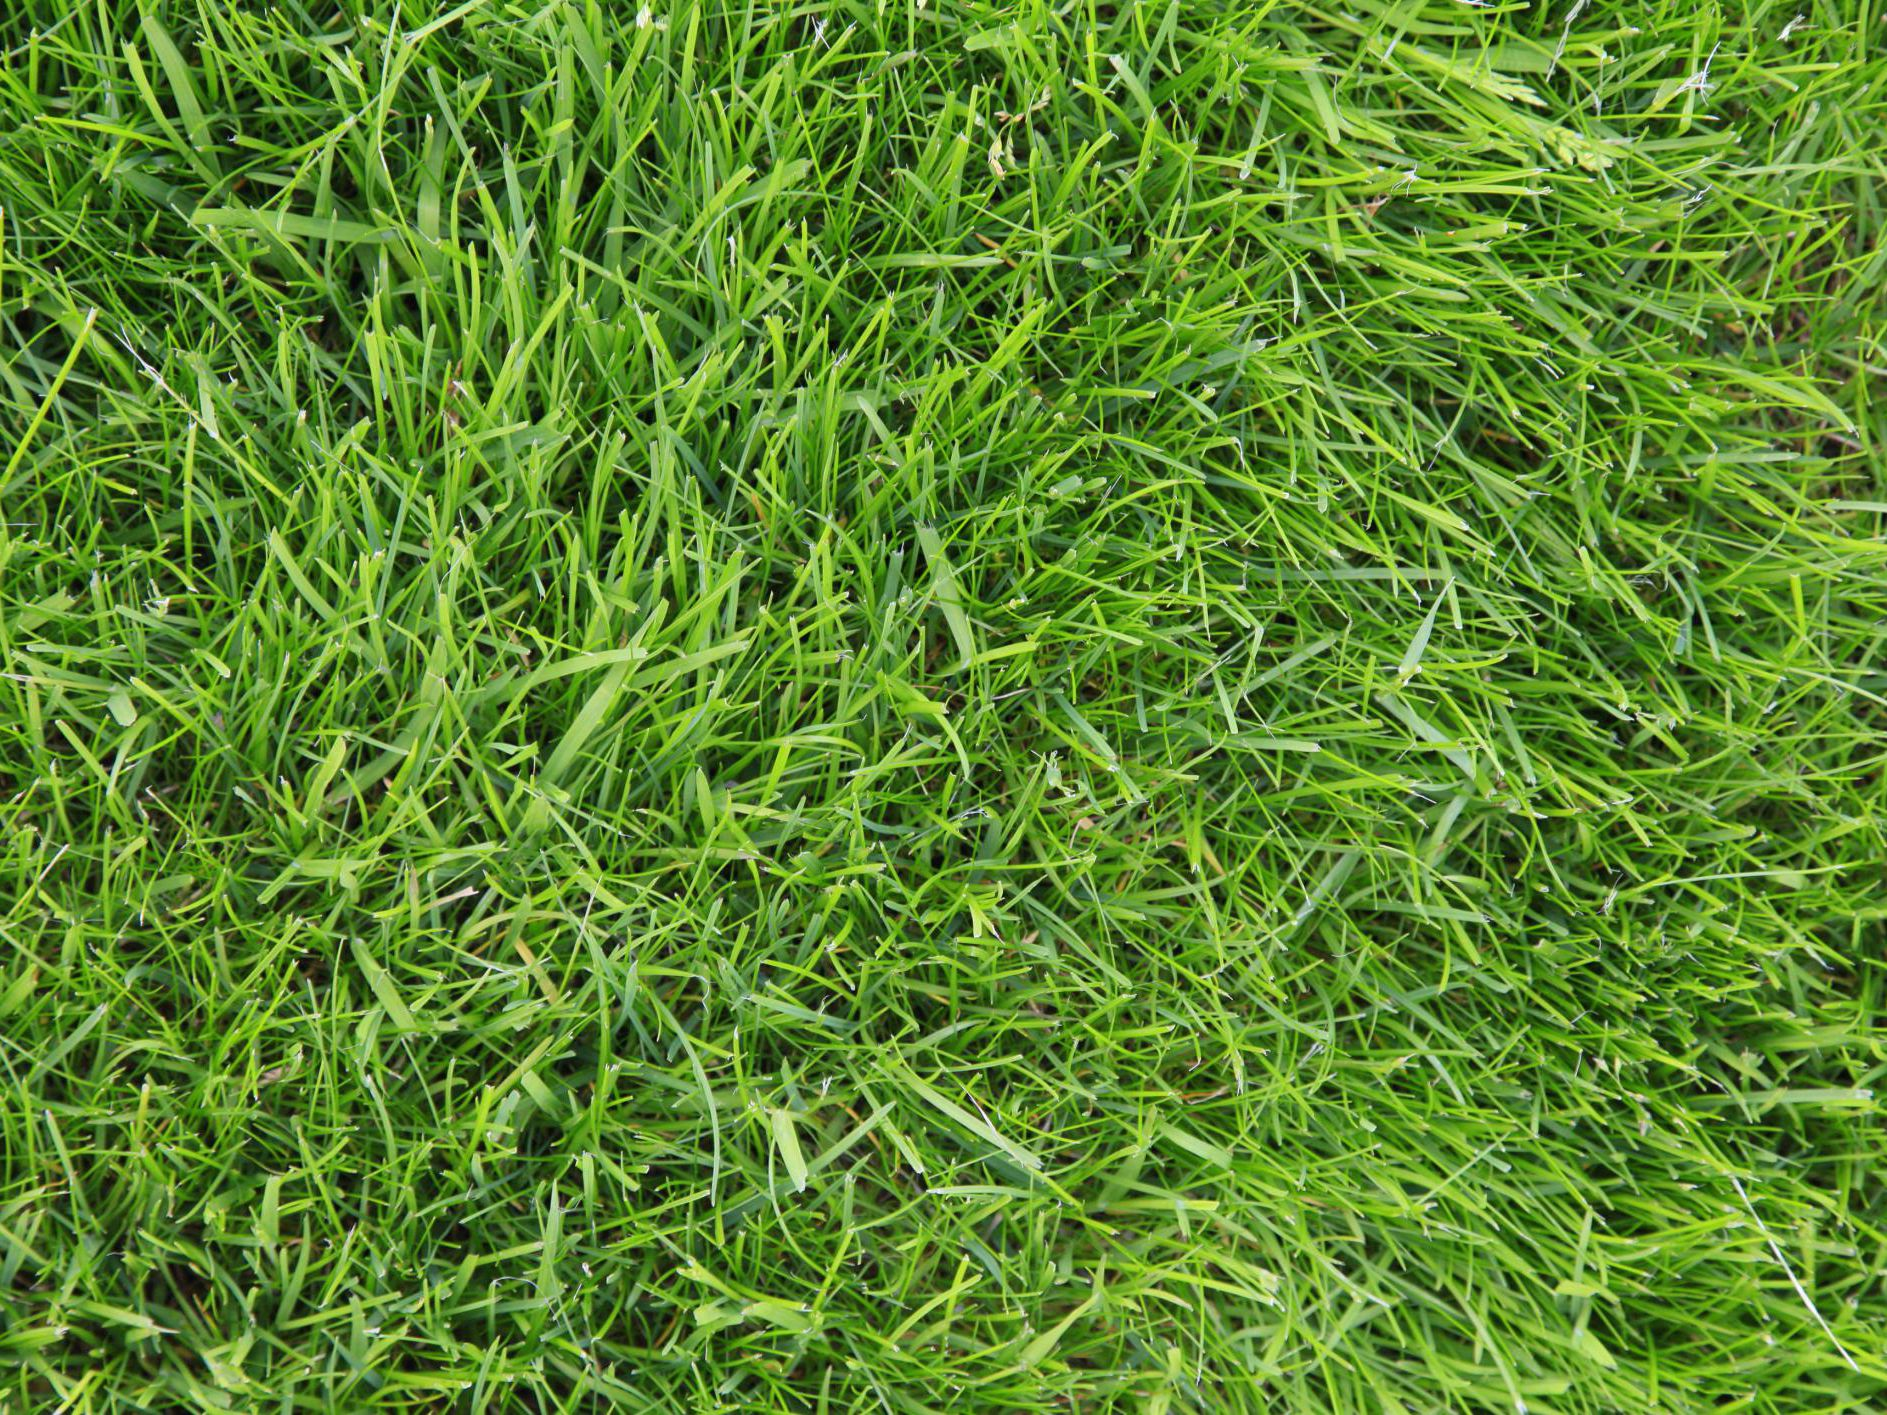 10 best types of drought-tolerant lawn grass